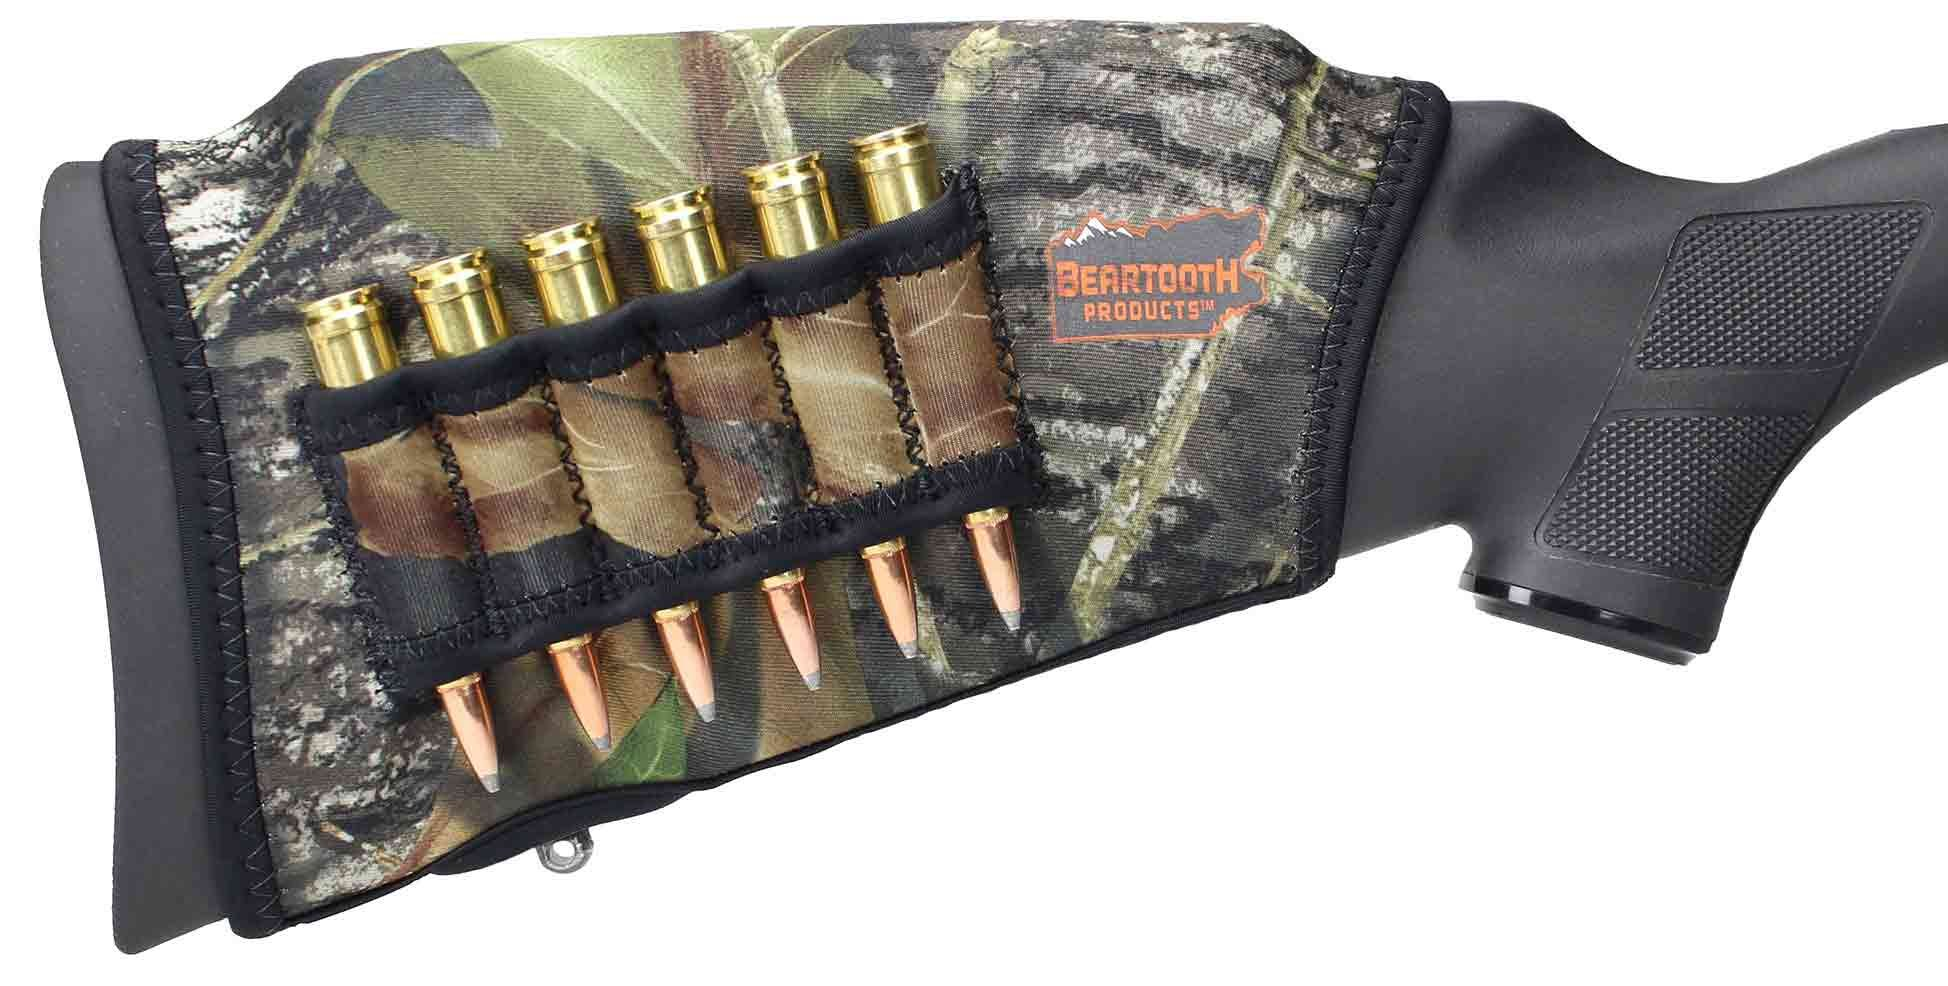 Beartooth Comb Raising Kit 2.0 - Premium Neoprene Gun Stock Cover + (5) Hi-density Foam Inserts - RIFLE MODEL (Mossy Oak Break-up - Left Handed) by Beartooth